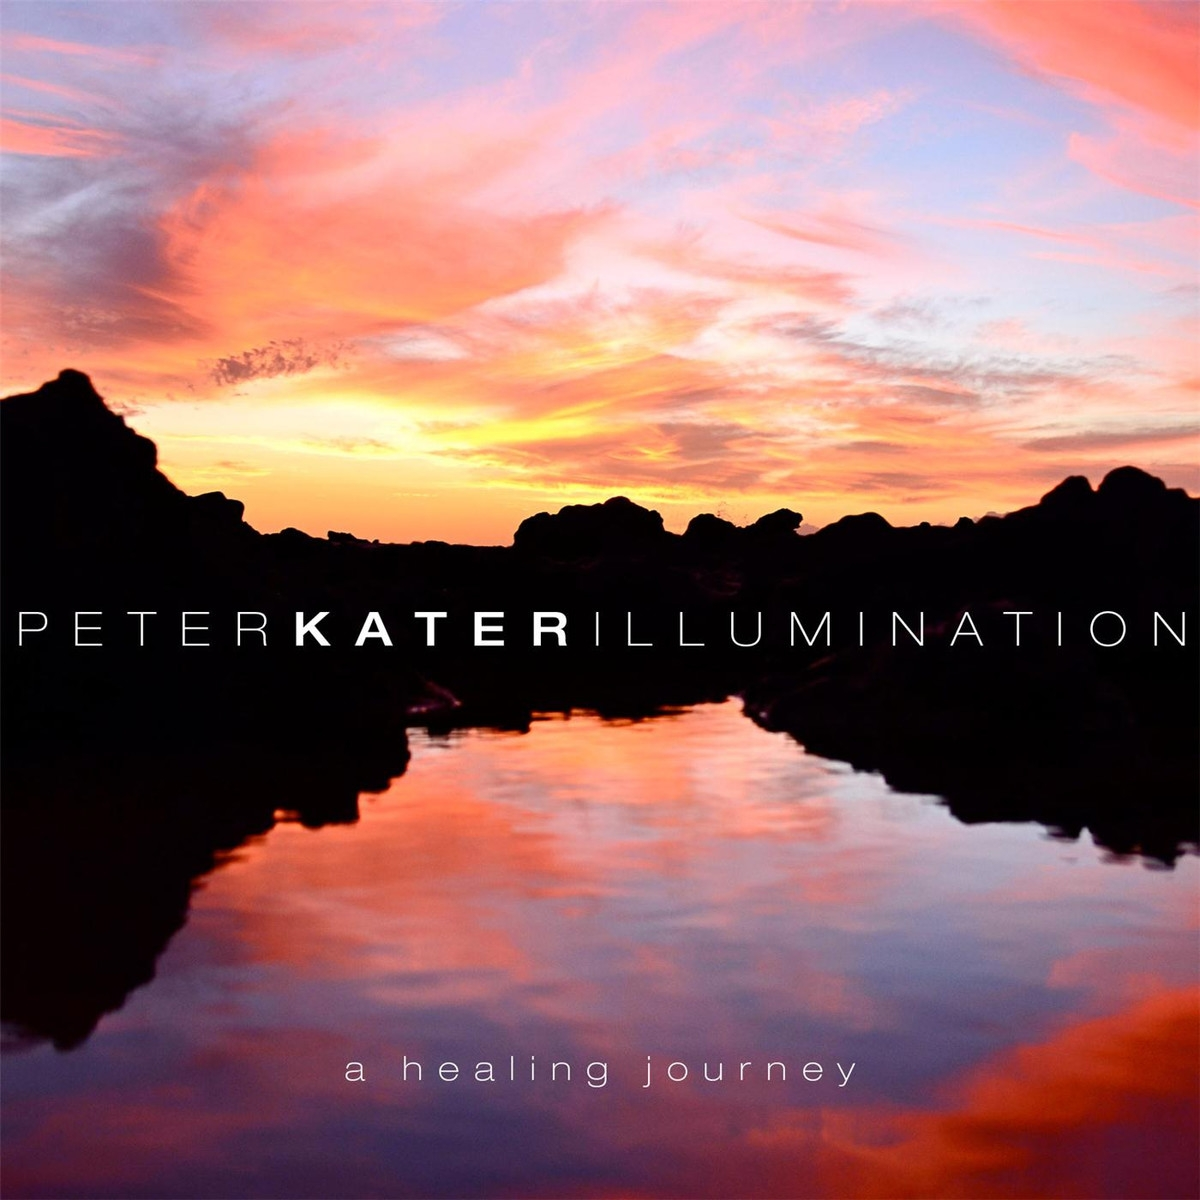 Illumination - a healing journey